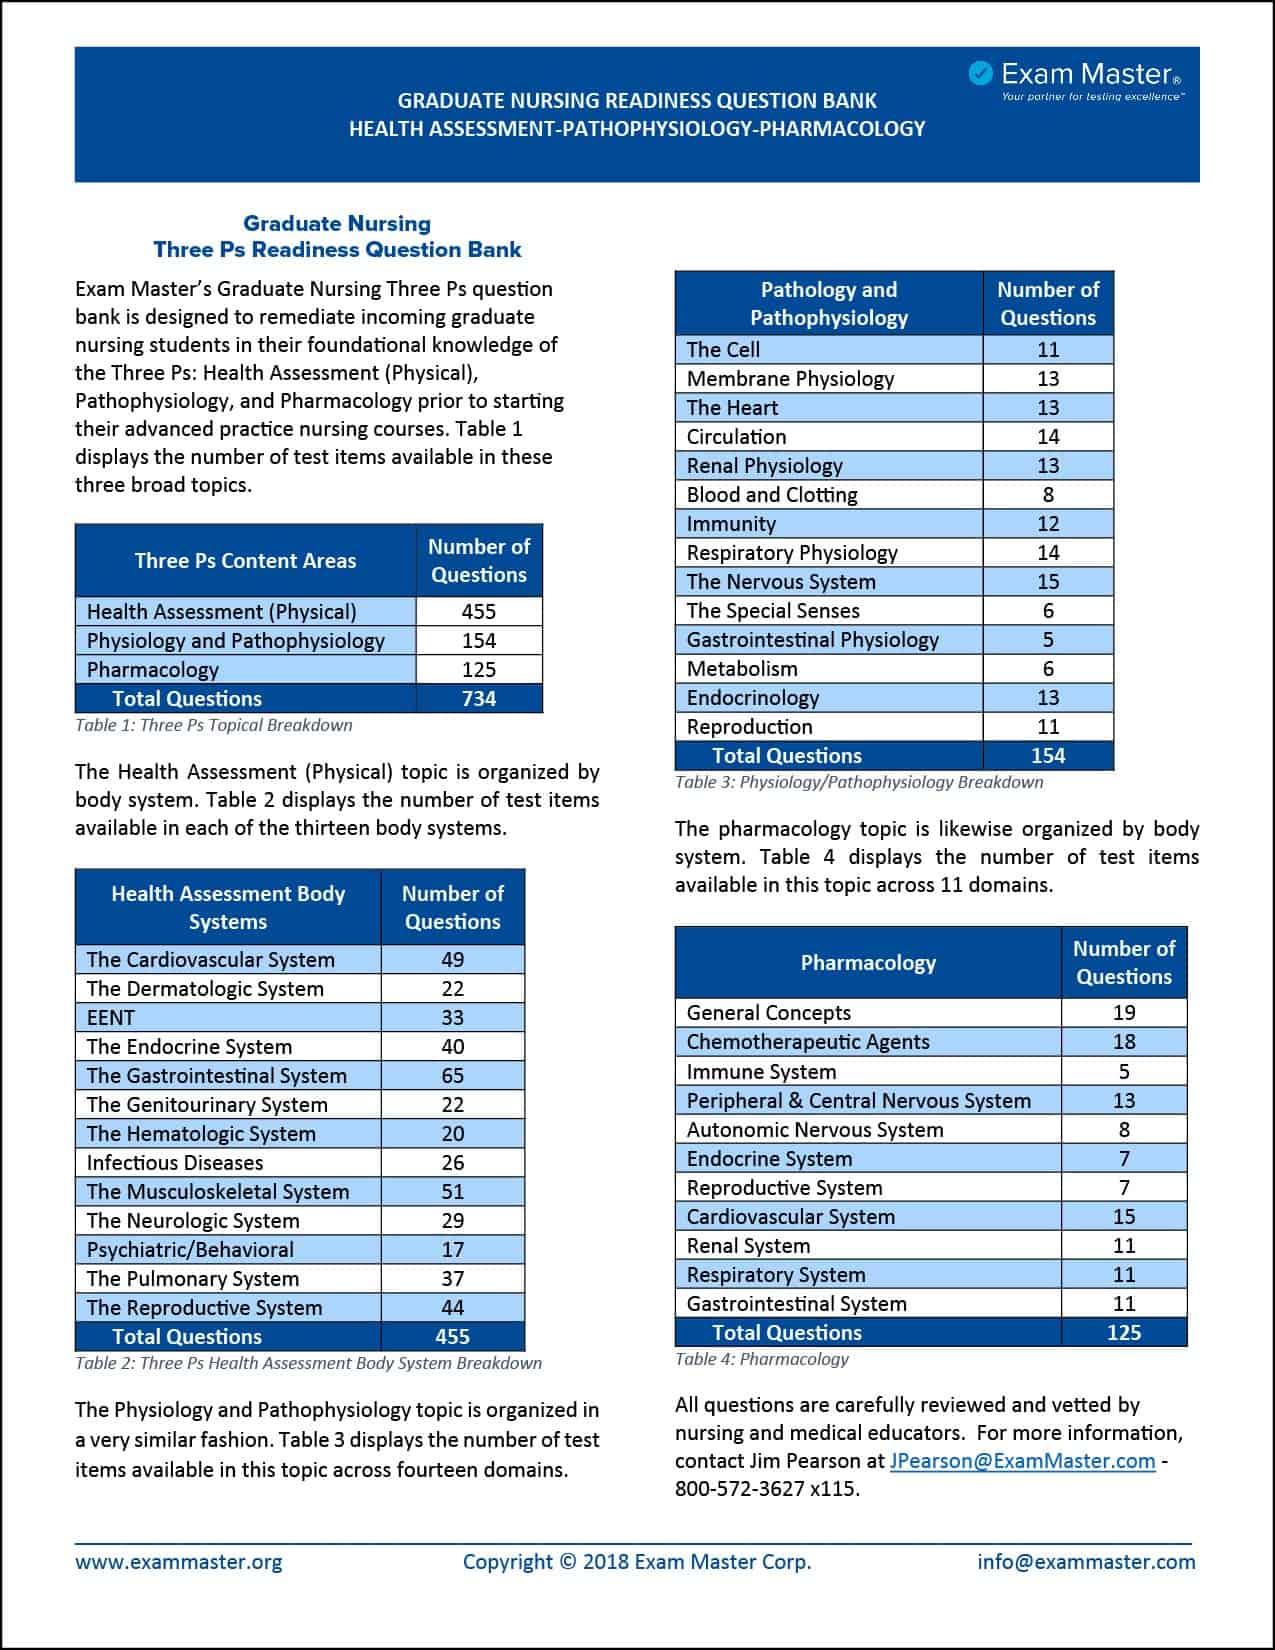 Graduate Nursing 3 Ps Readiness Question Bank Data Sheet